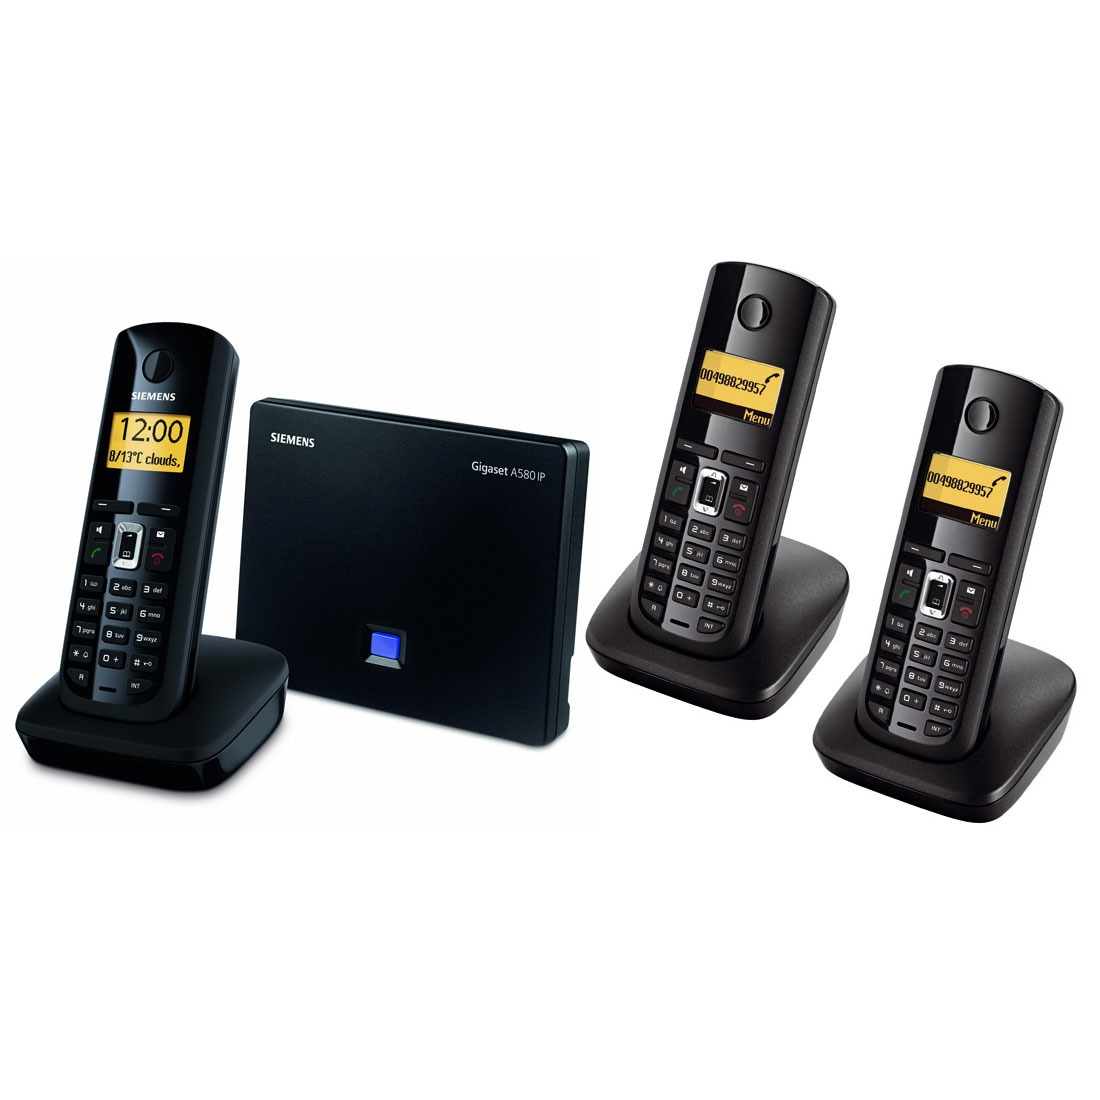 siemens gigaset a580 ip trio t l phone sans fil siemens. Black Bedroom Furniture Sets. Home Design Ideas